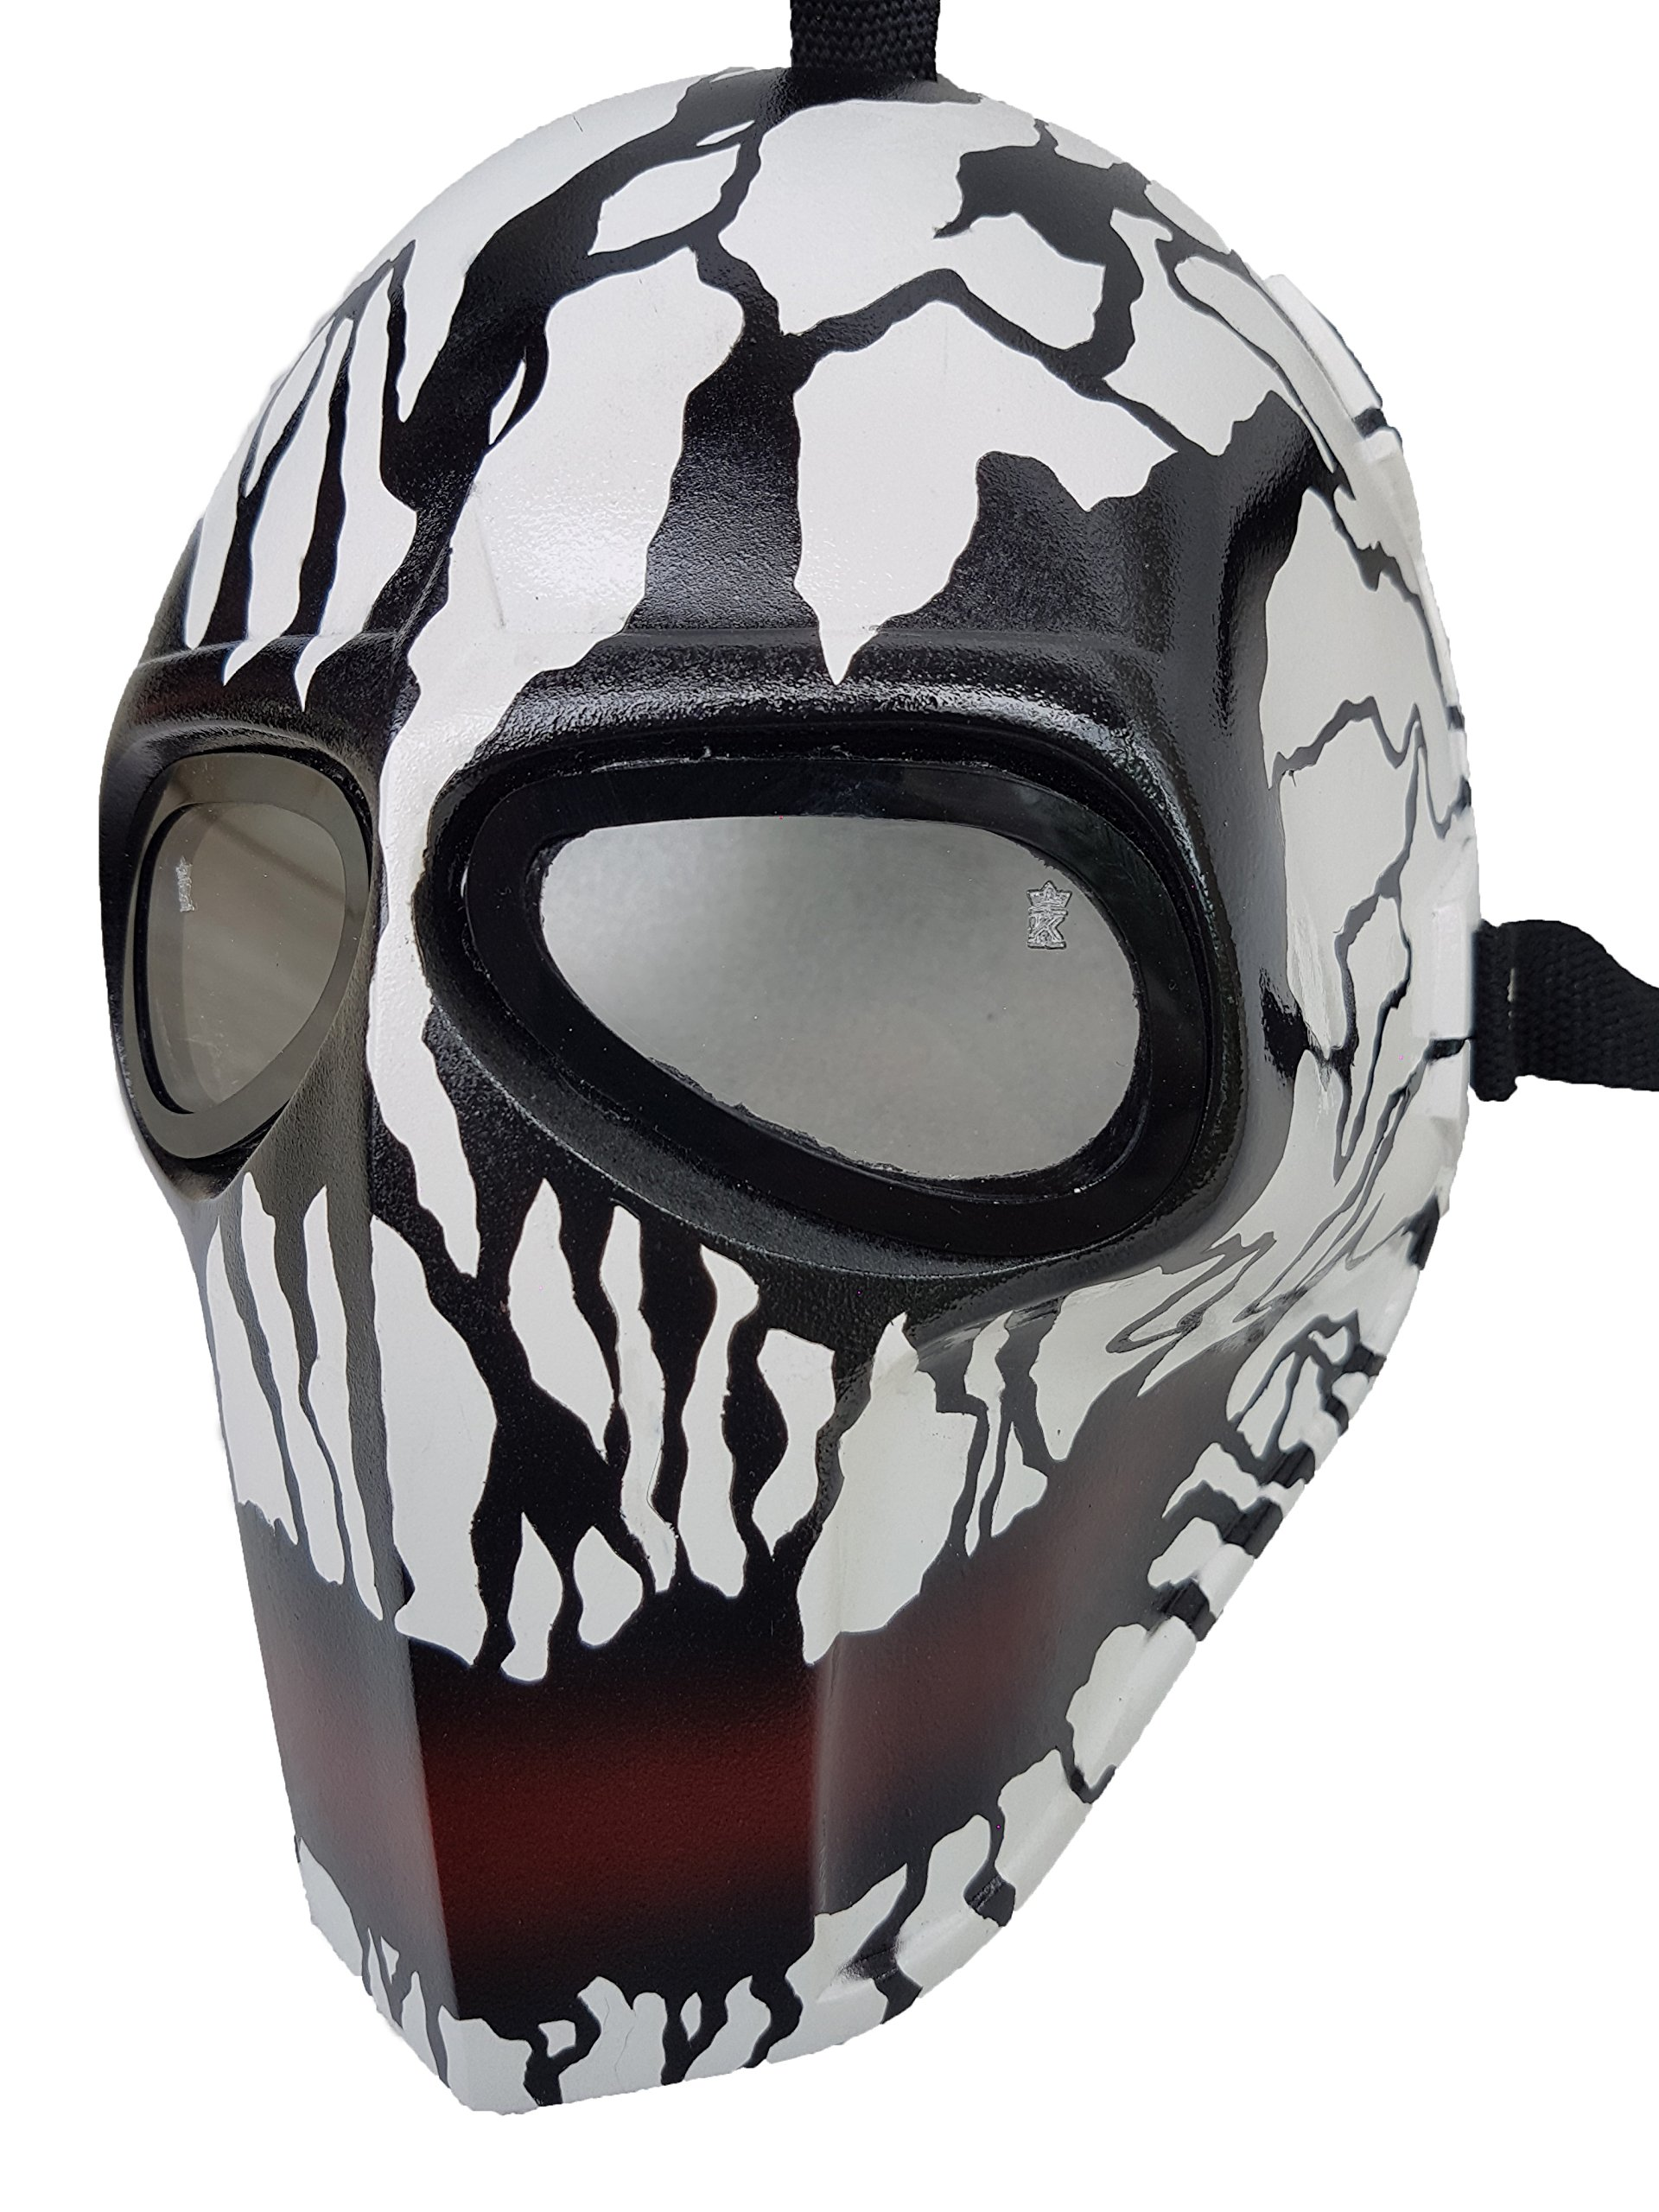 Invader King ® Crank Paintball Mask Airsoft Mask Protective Gear Outdoor Sport Fancy Party Ghost Masks Bb Gun